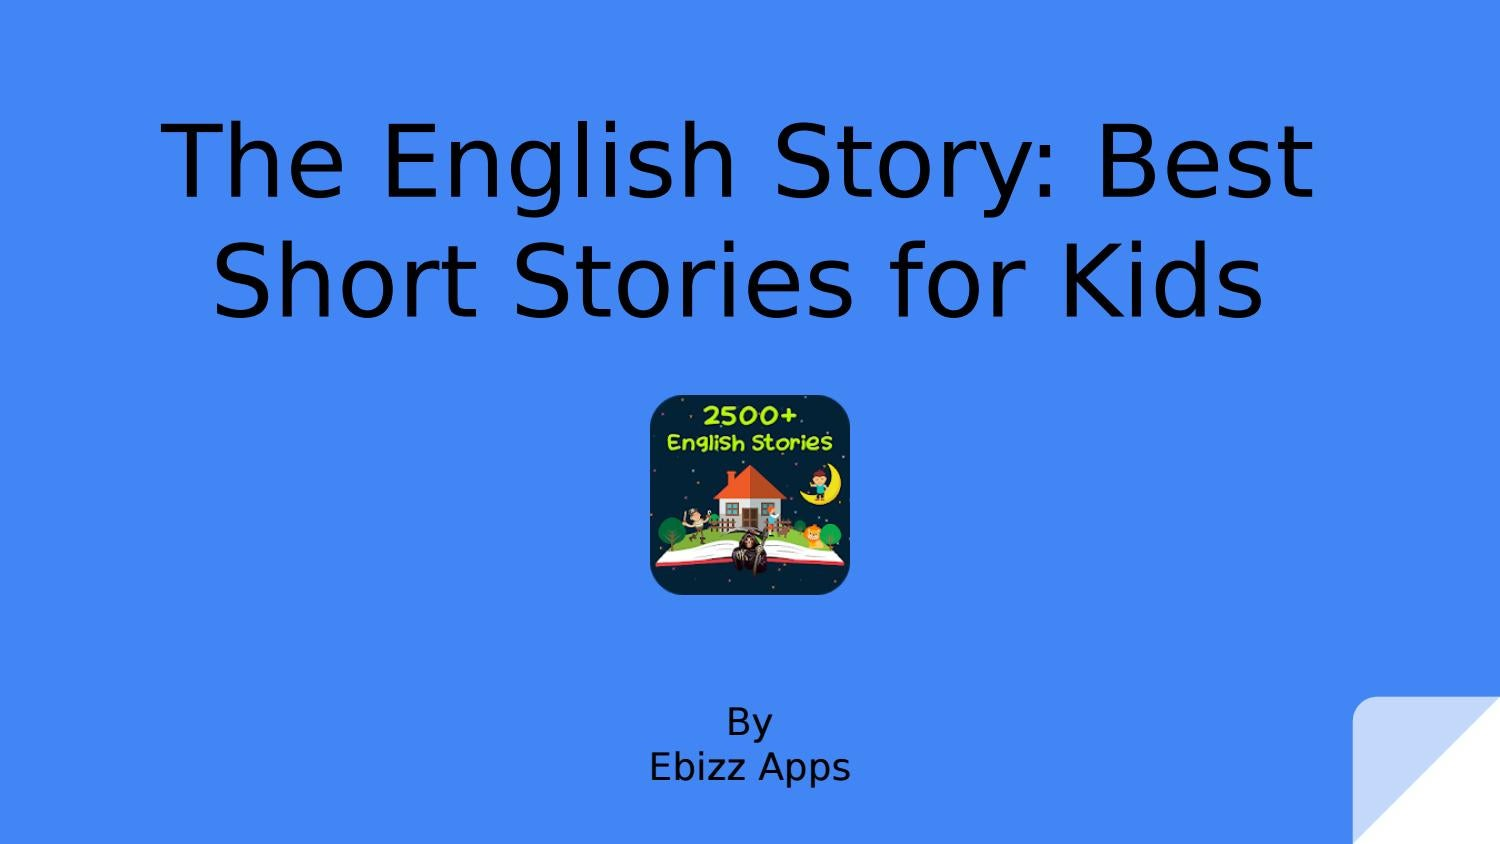 The English Story: Best Short Stories for Kids by